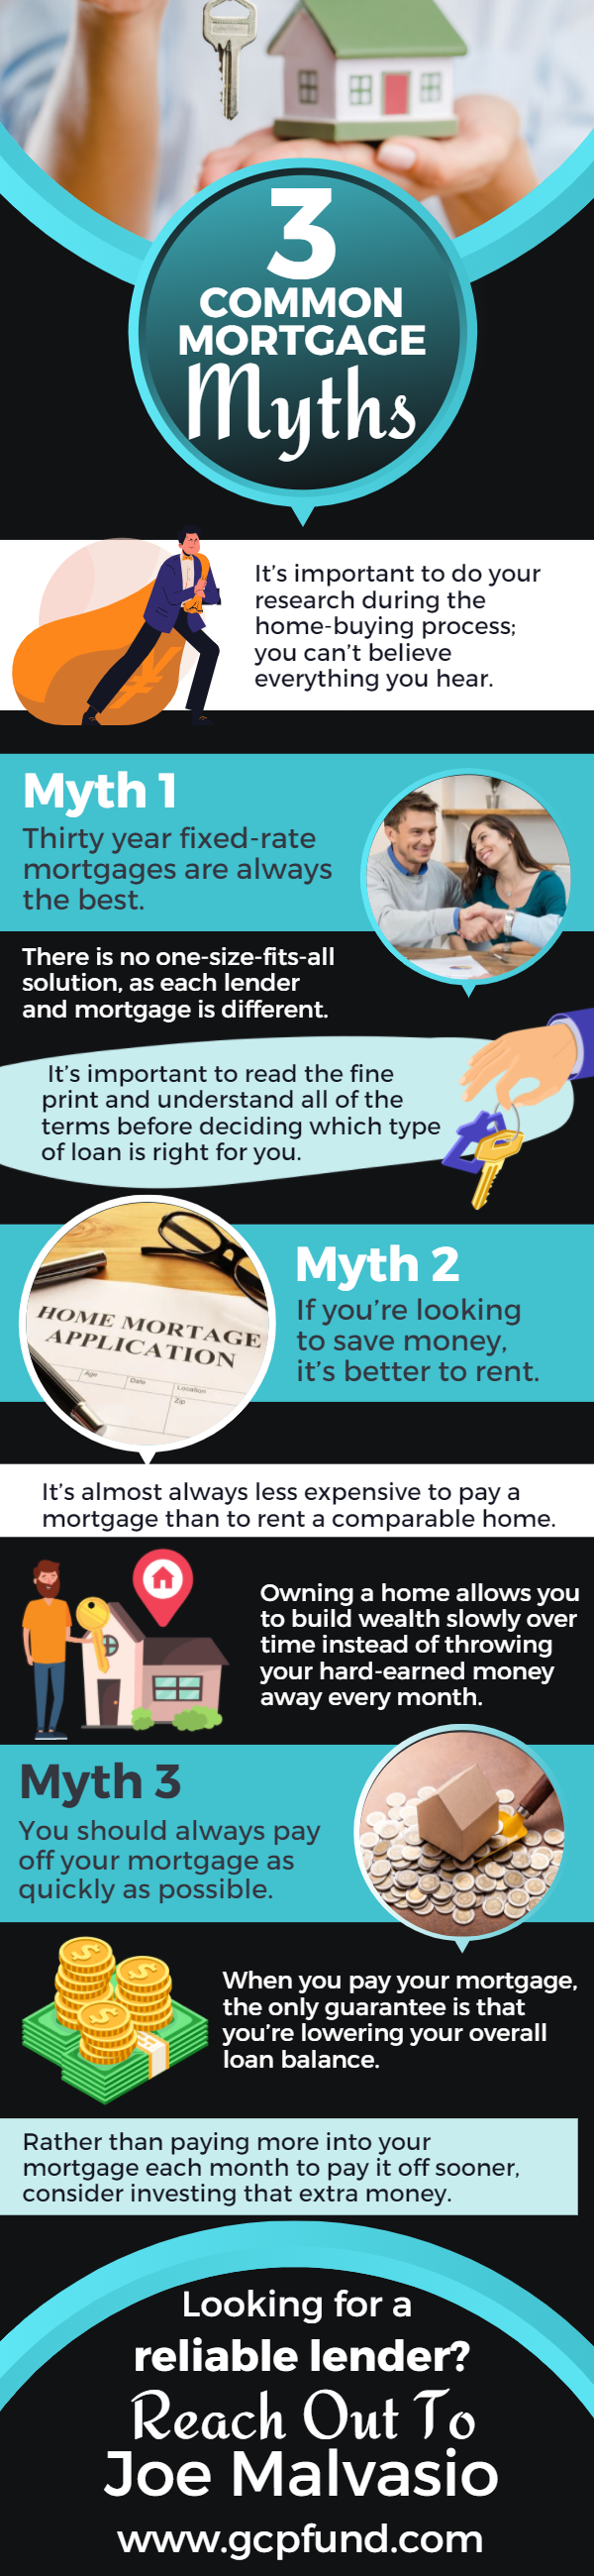 3 Common Mortgage Myths